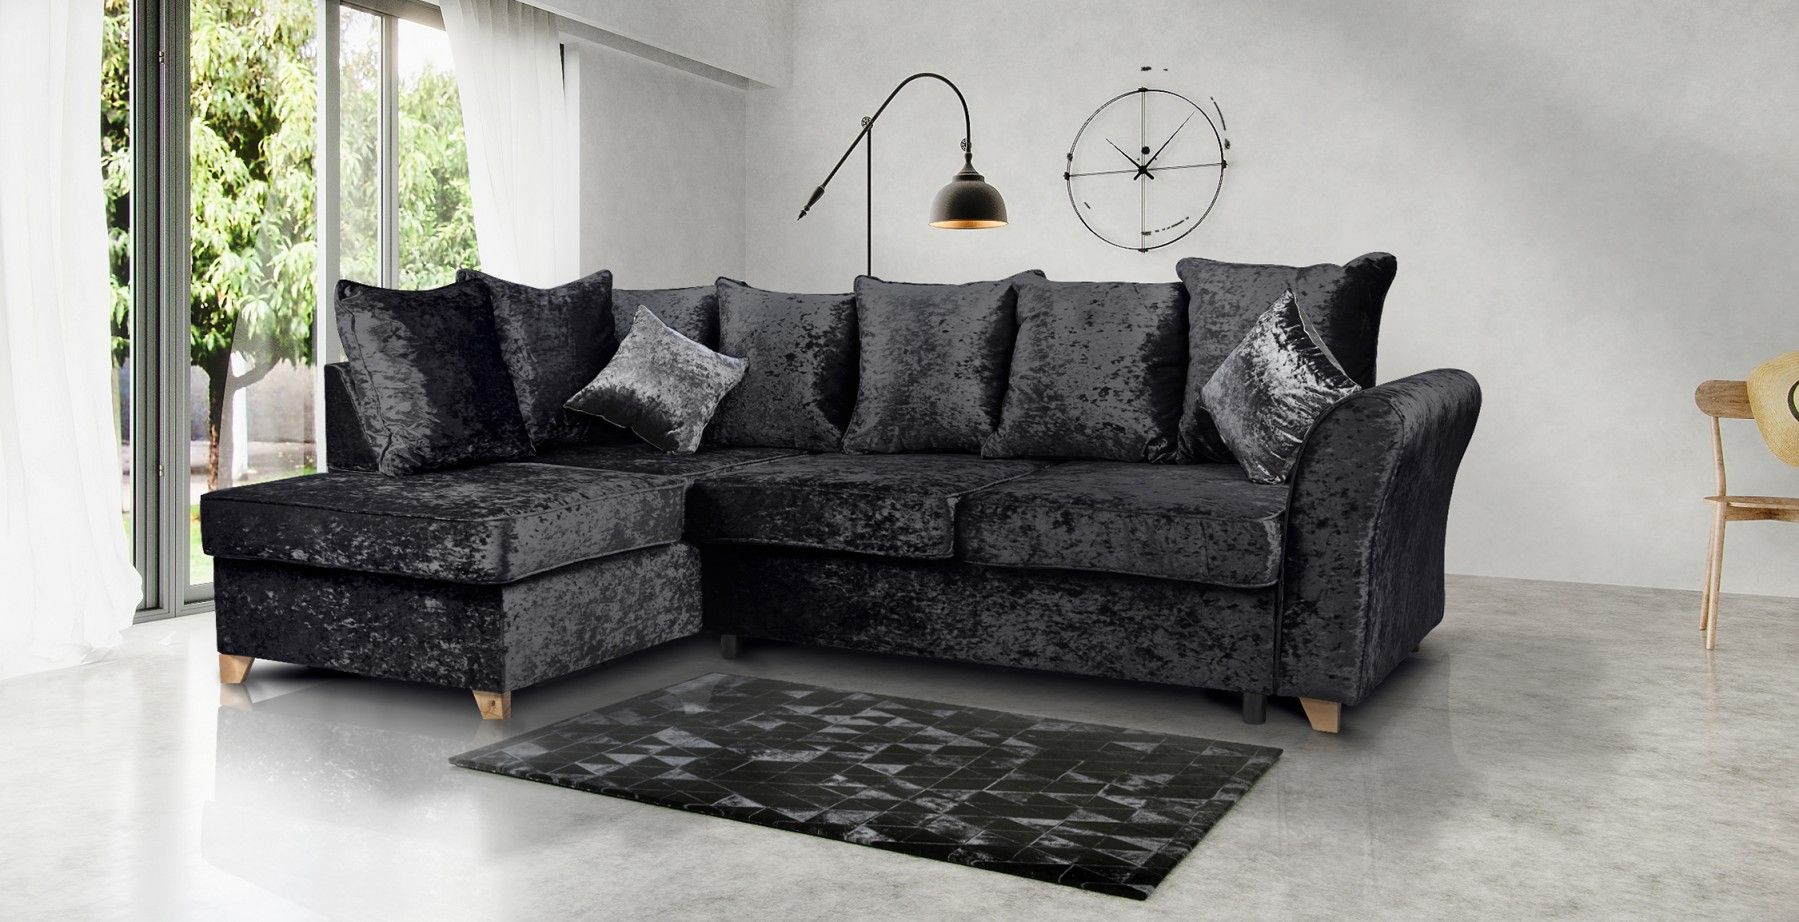 upholstered in a crushed velvet fabric the jasmine will